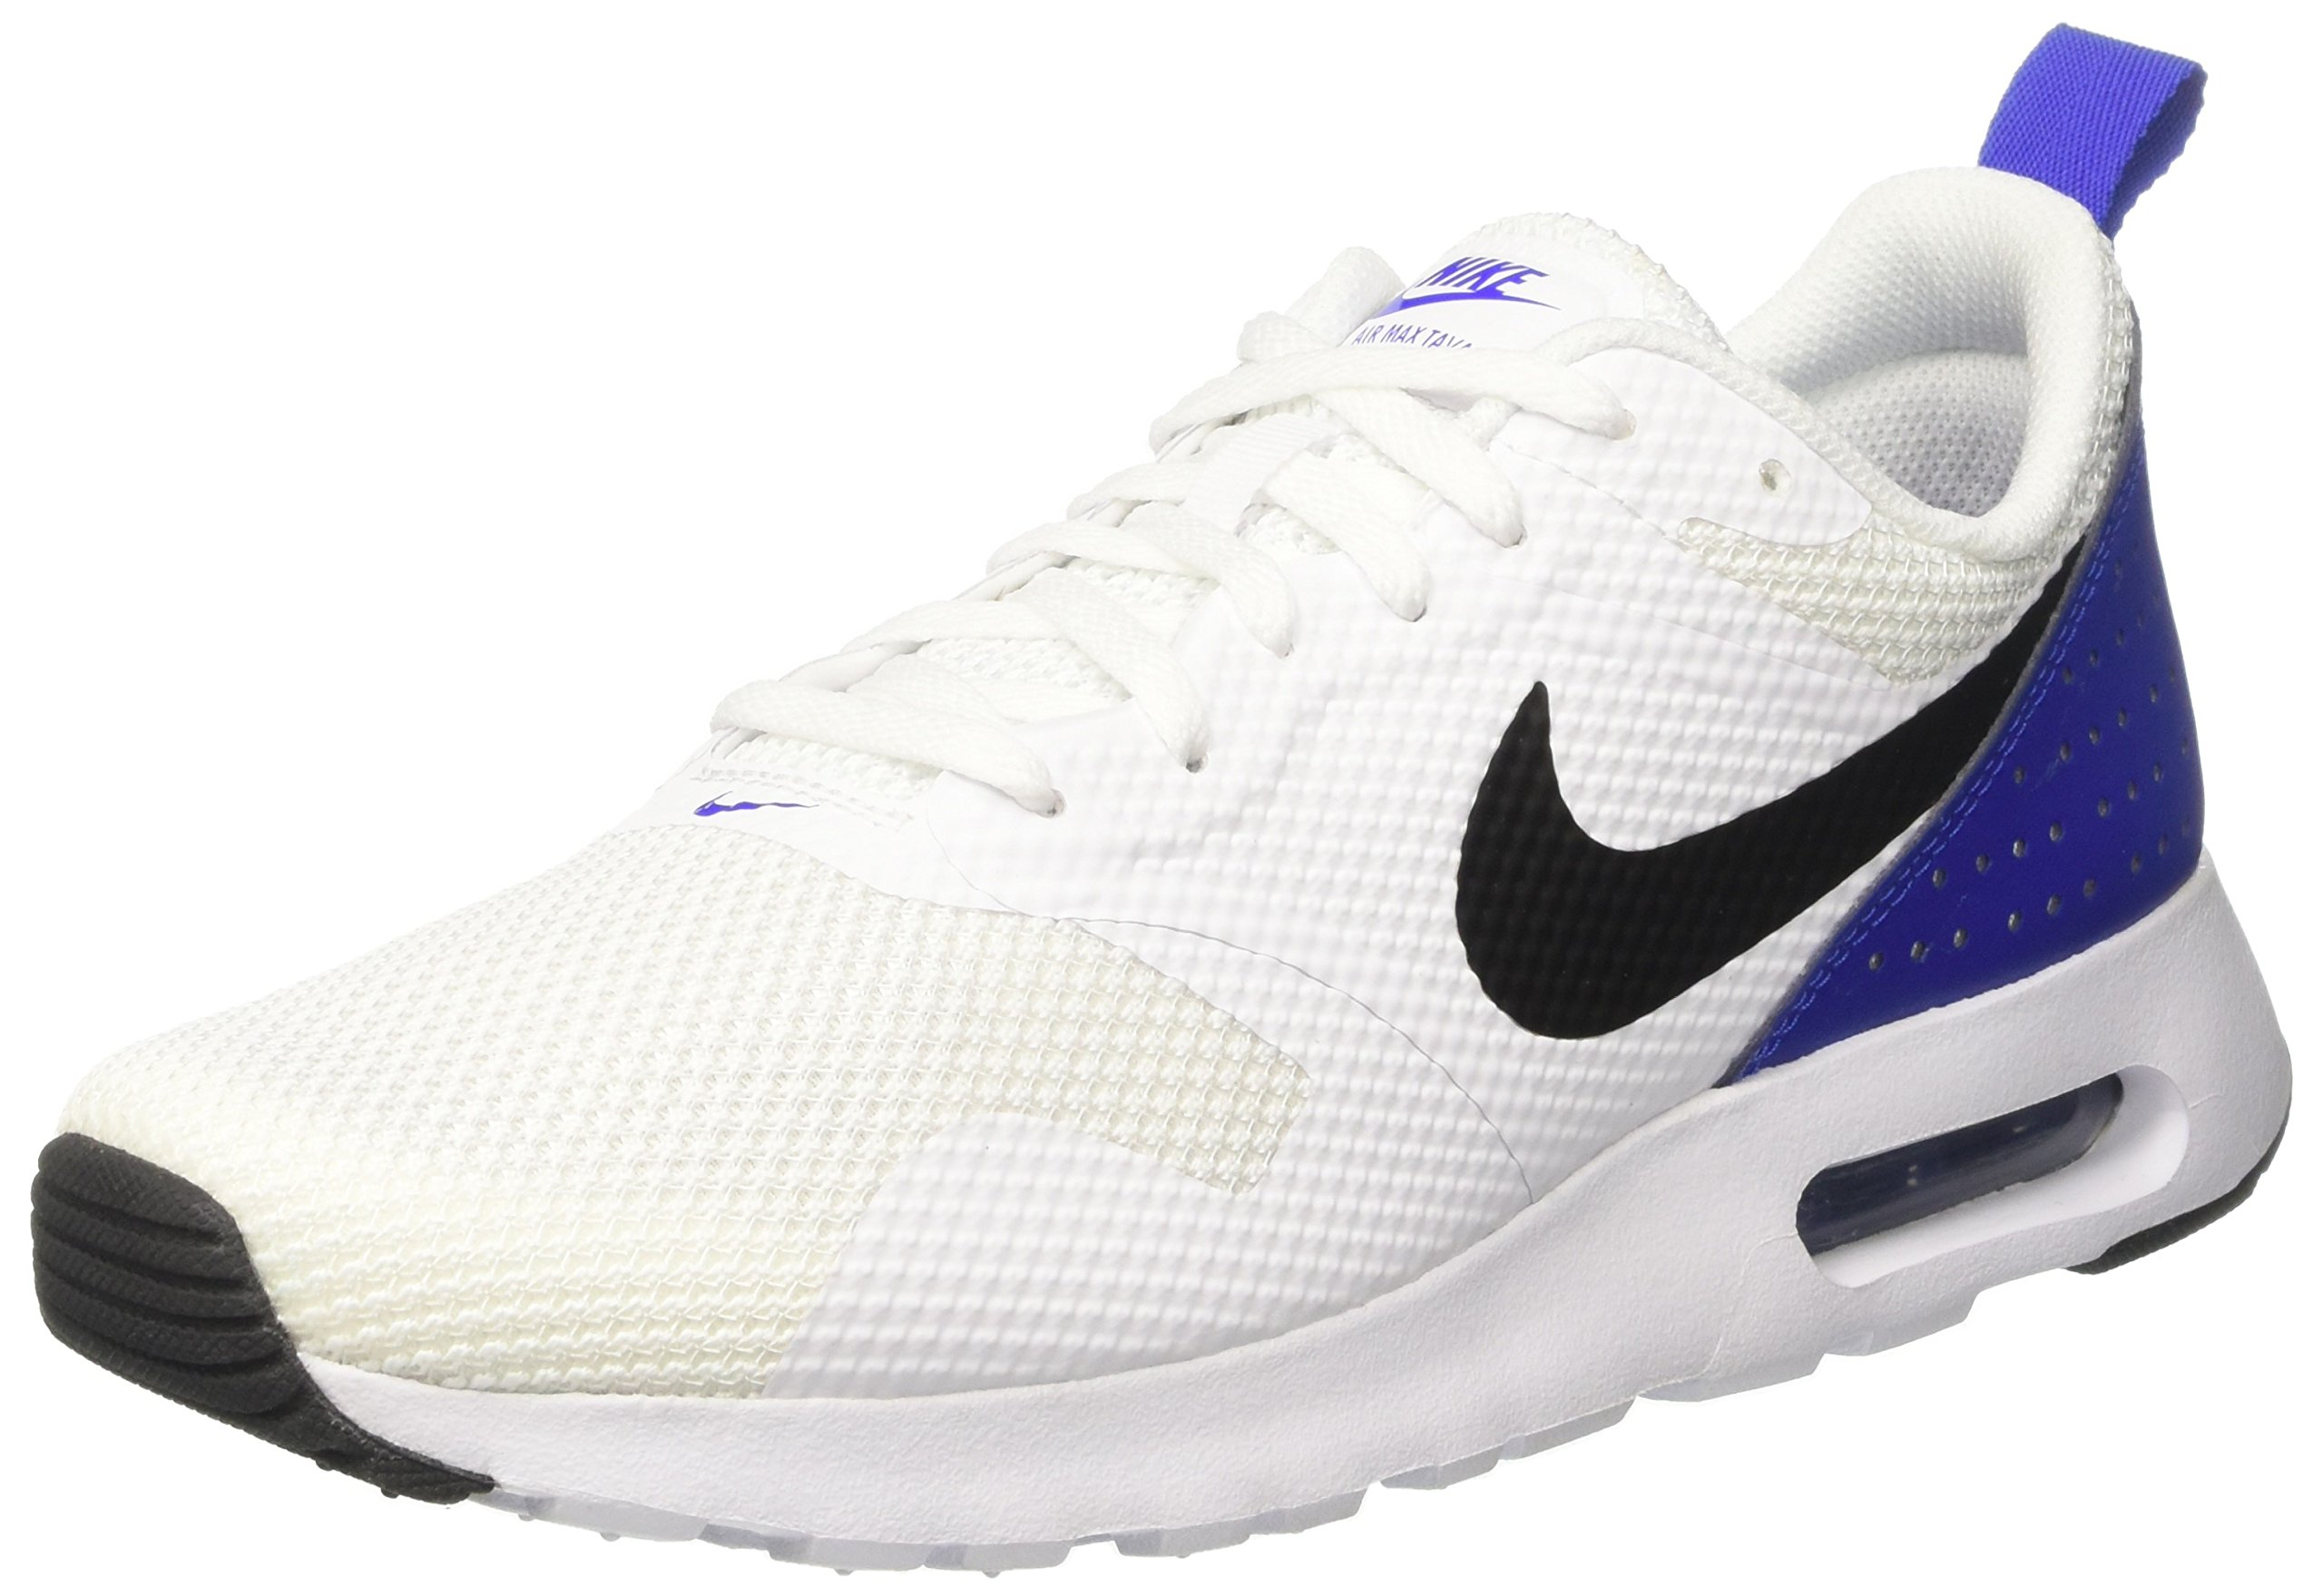 differently 64d58 fb6f3 Galleon - NIKE Men s Air Max Tavas Fashion Shoes White Black Paramount  Blue, 10.5